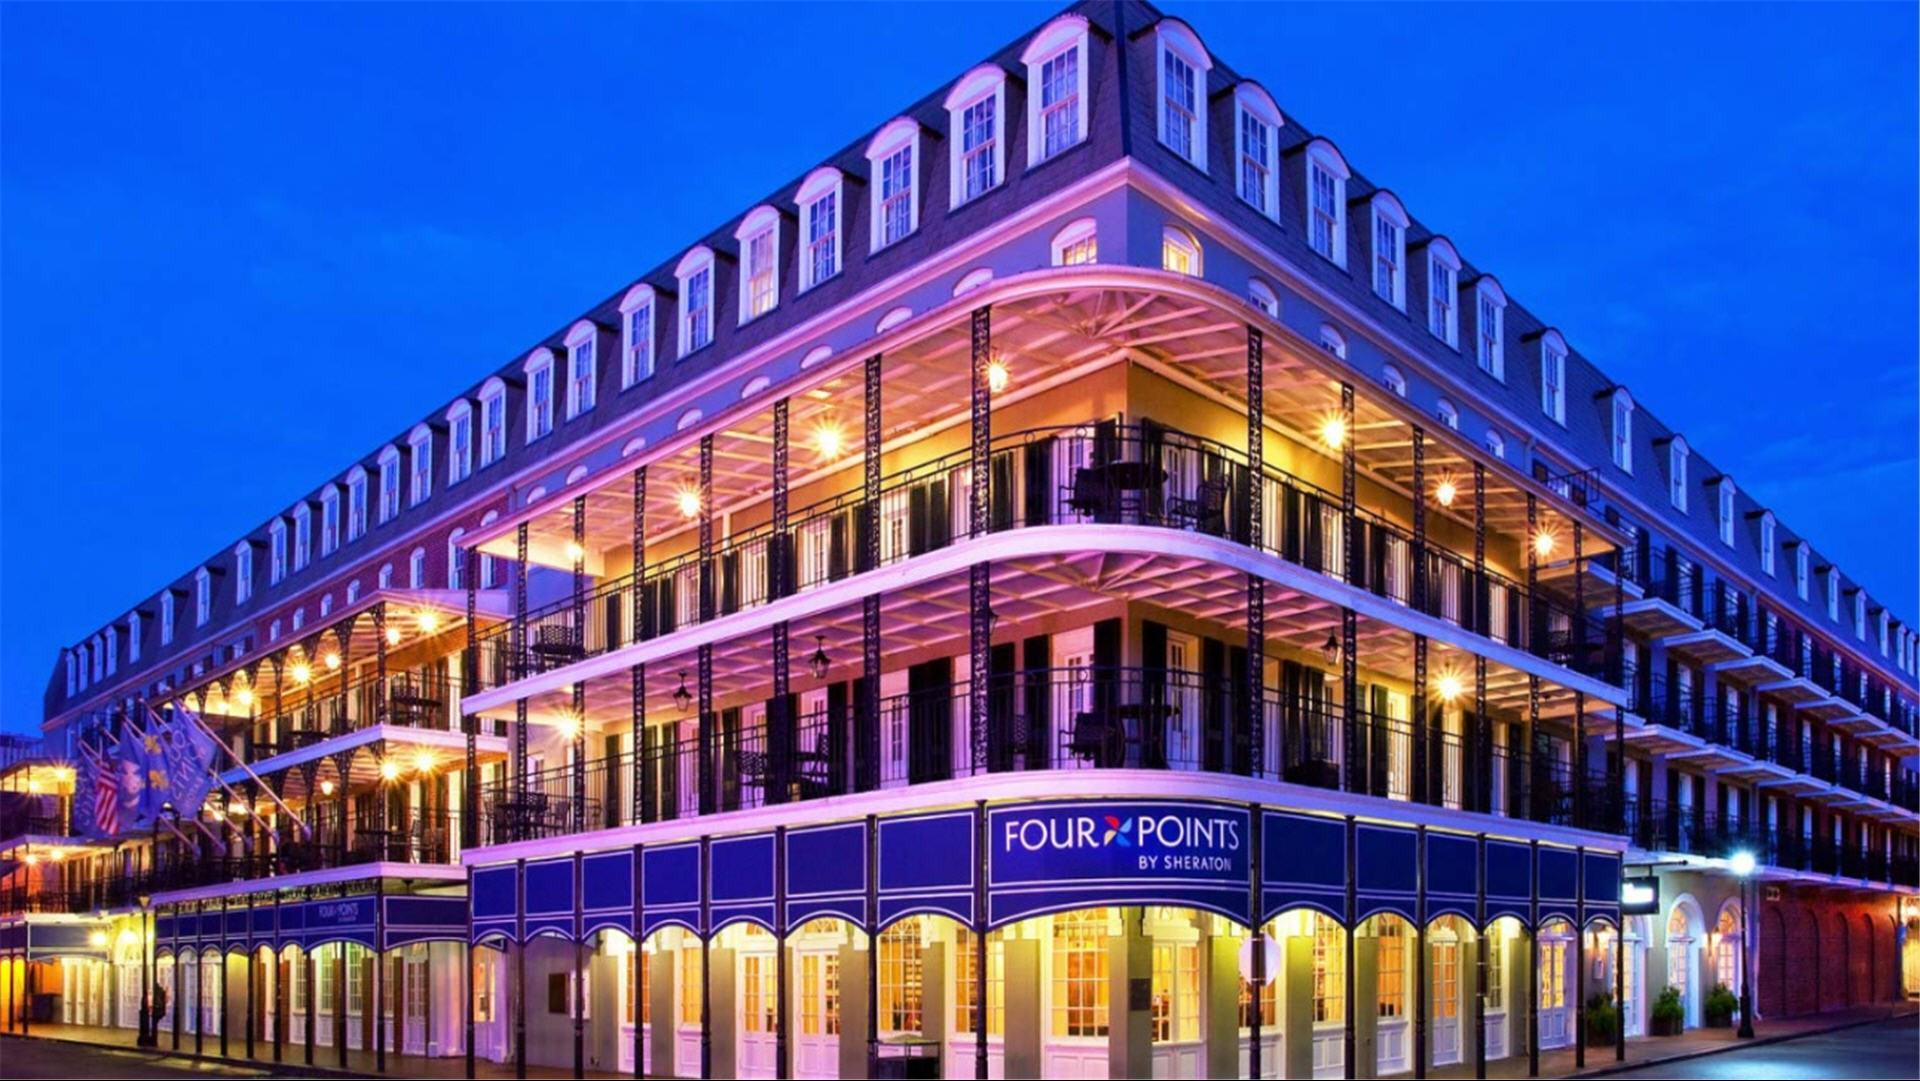 French Quarter Hotels >> Meetings And Events At Four Points By Sheraton French